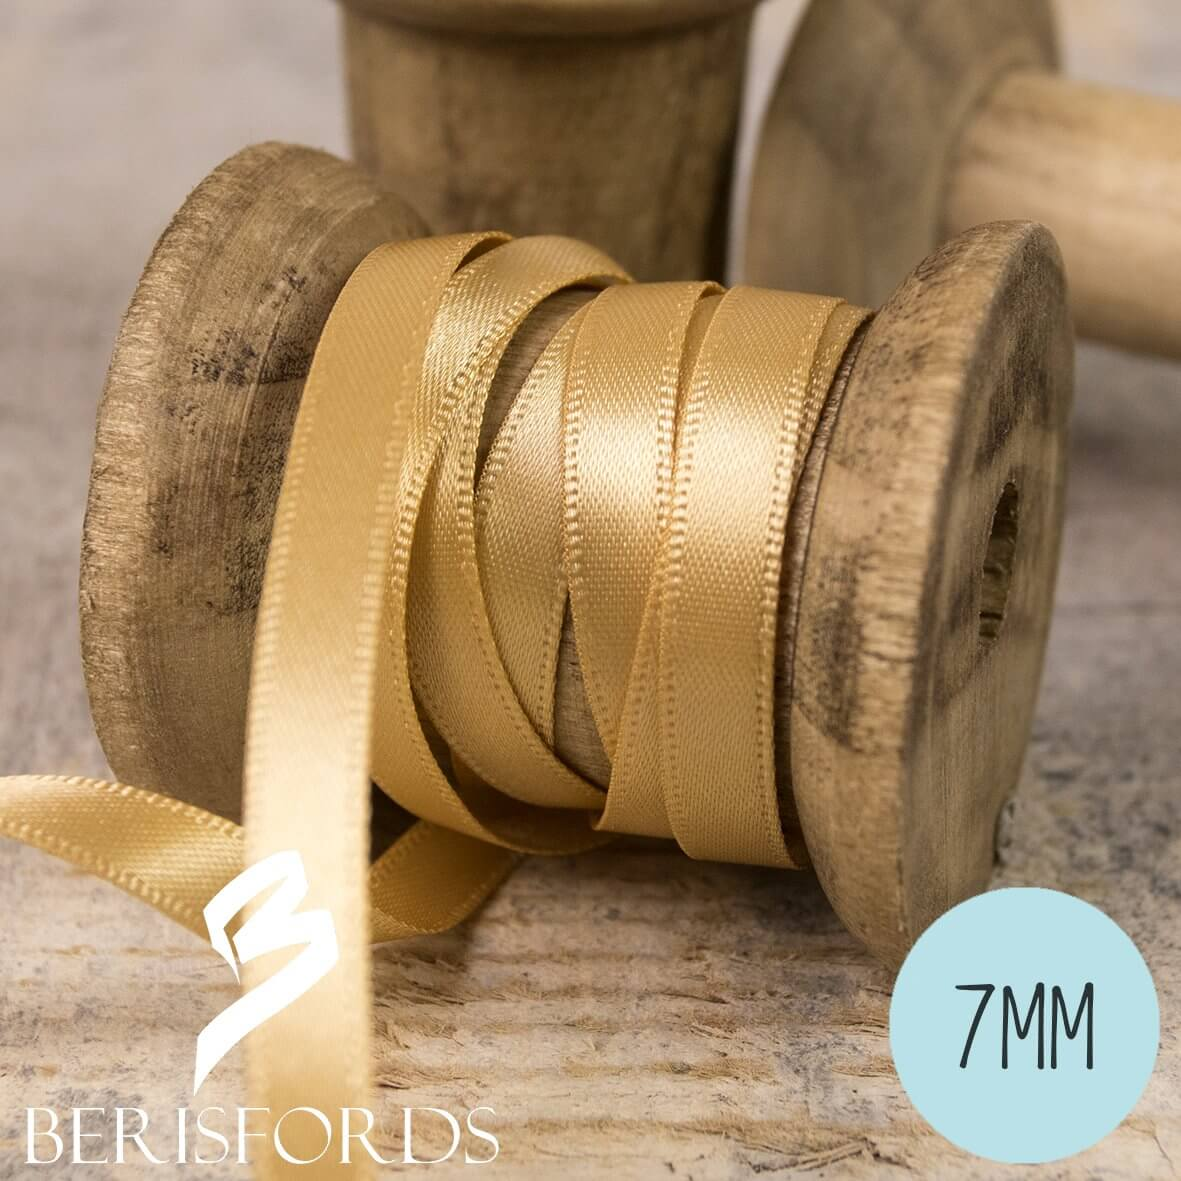 Berisfords Satin Ribbon 7mm